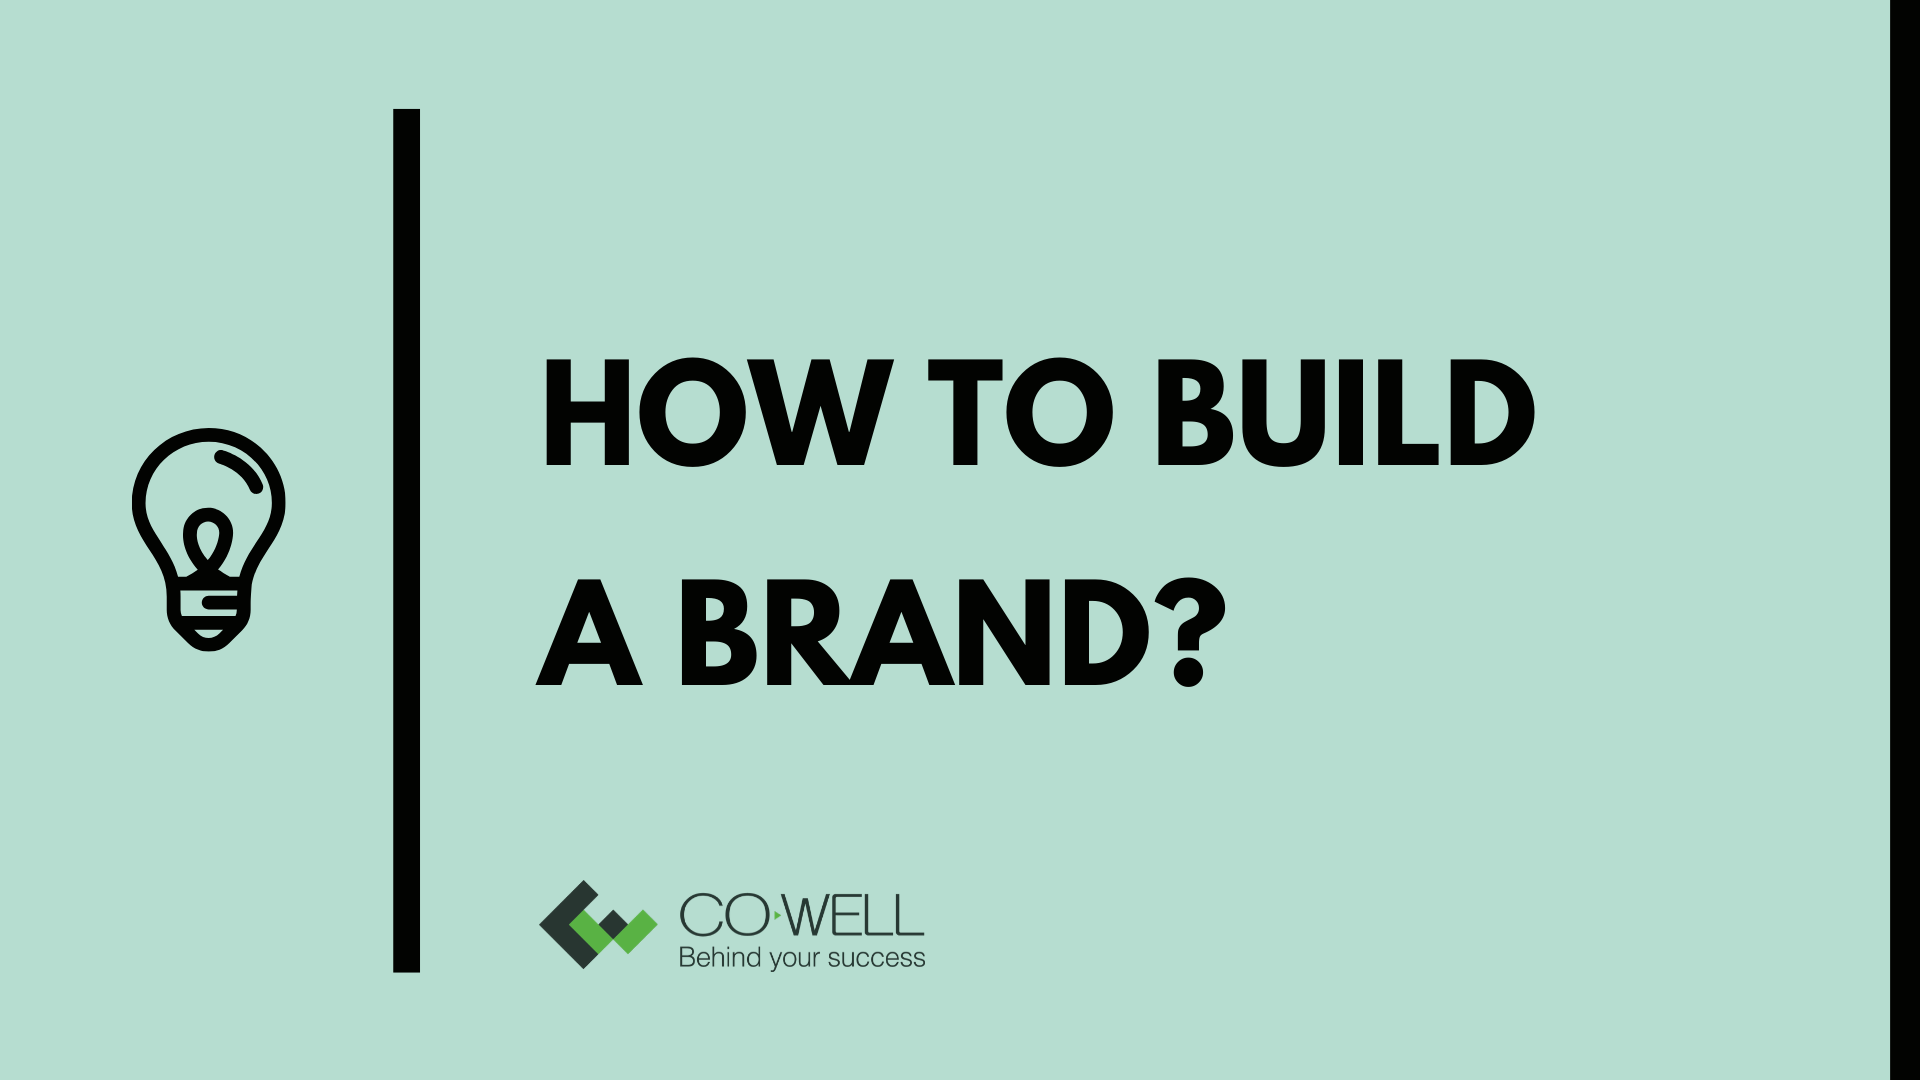 HOW TO BUILD A BRAND?